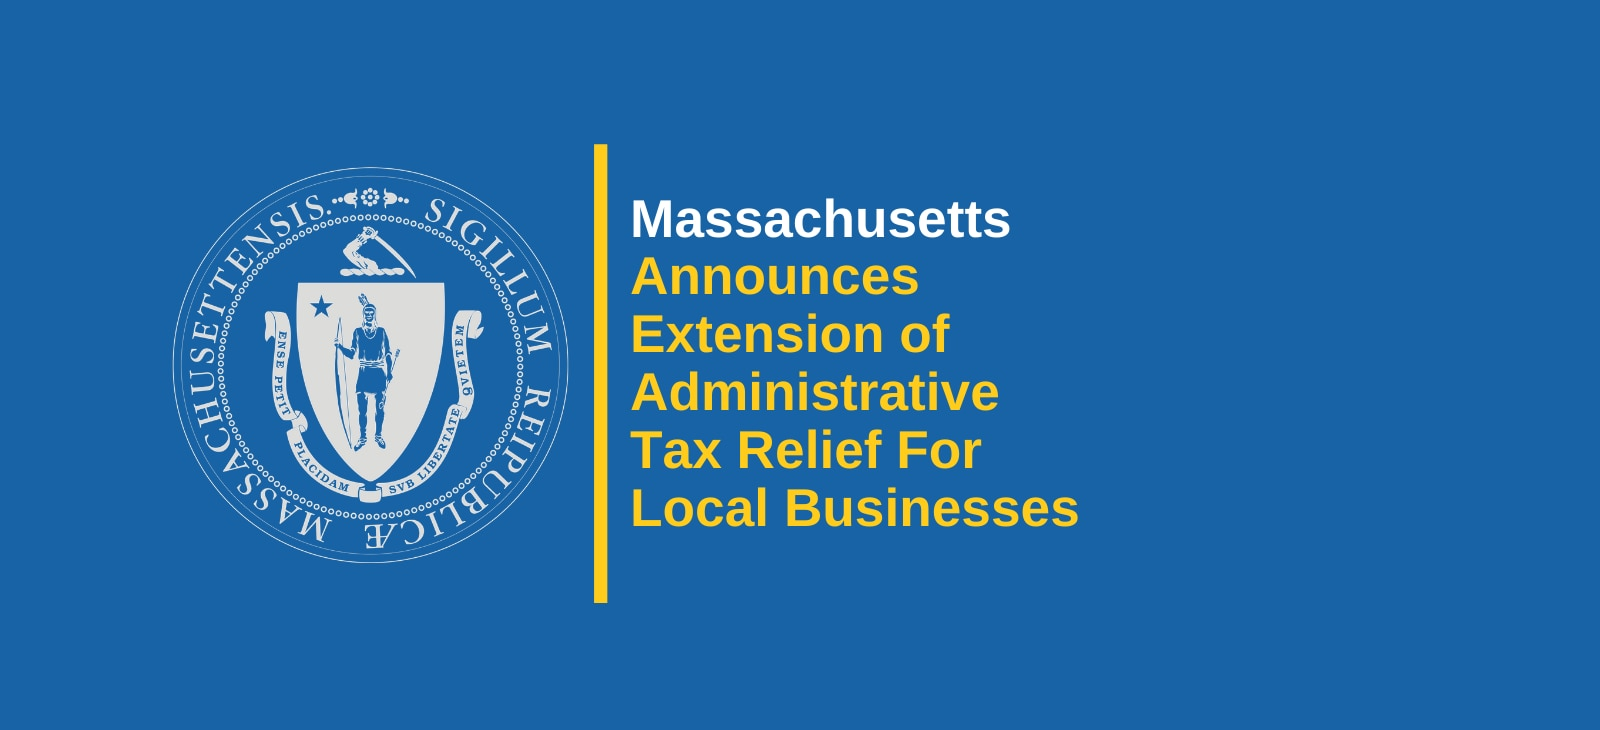 Massachusetts Announces Extension of Administrative Tax Relief for Local Businesses